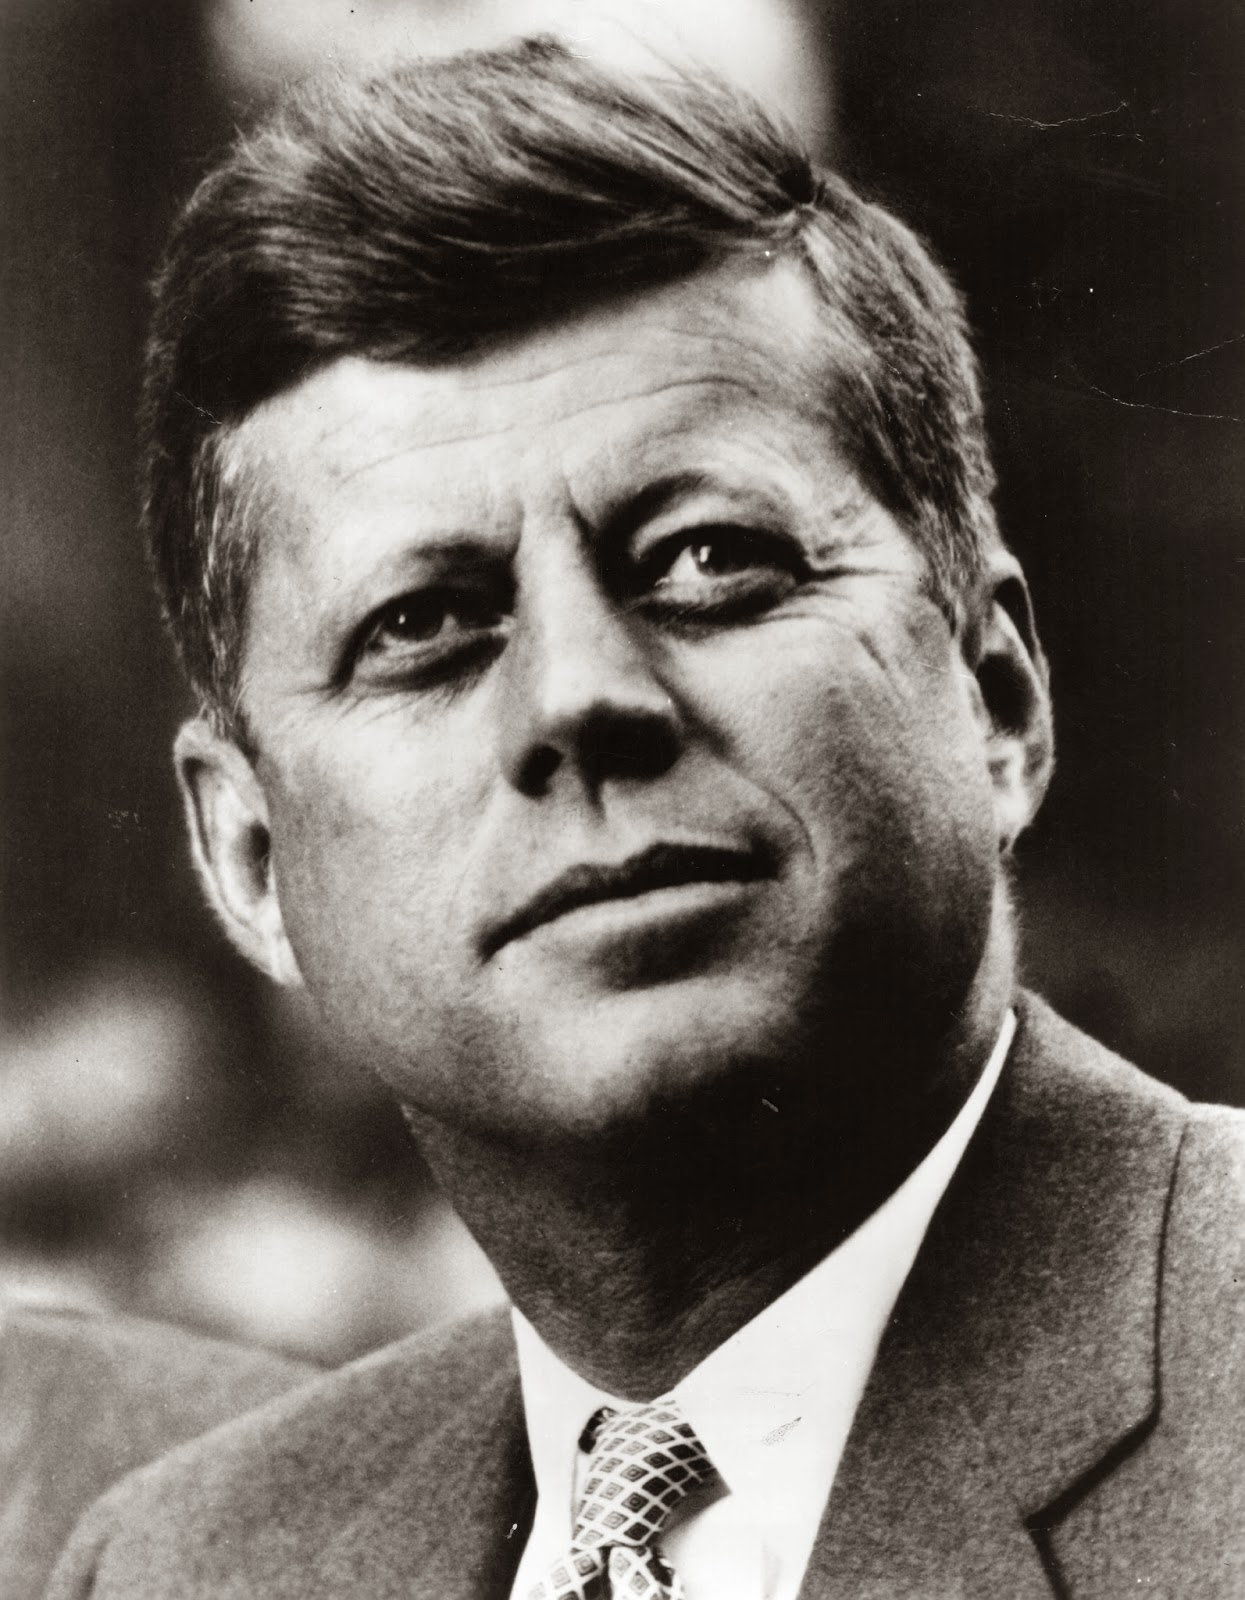 an introduction to the assassination of president john f kennedy President john f kennedy research paper this year marks the 50th anniversary of assassination of president kennedy this was a huge milestone in the past half.